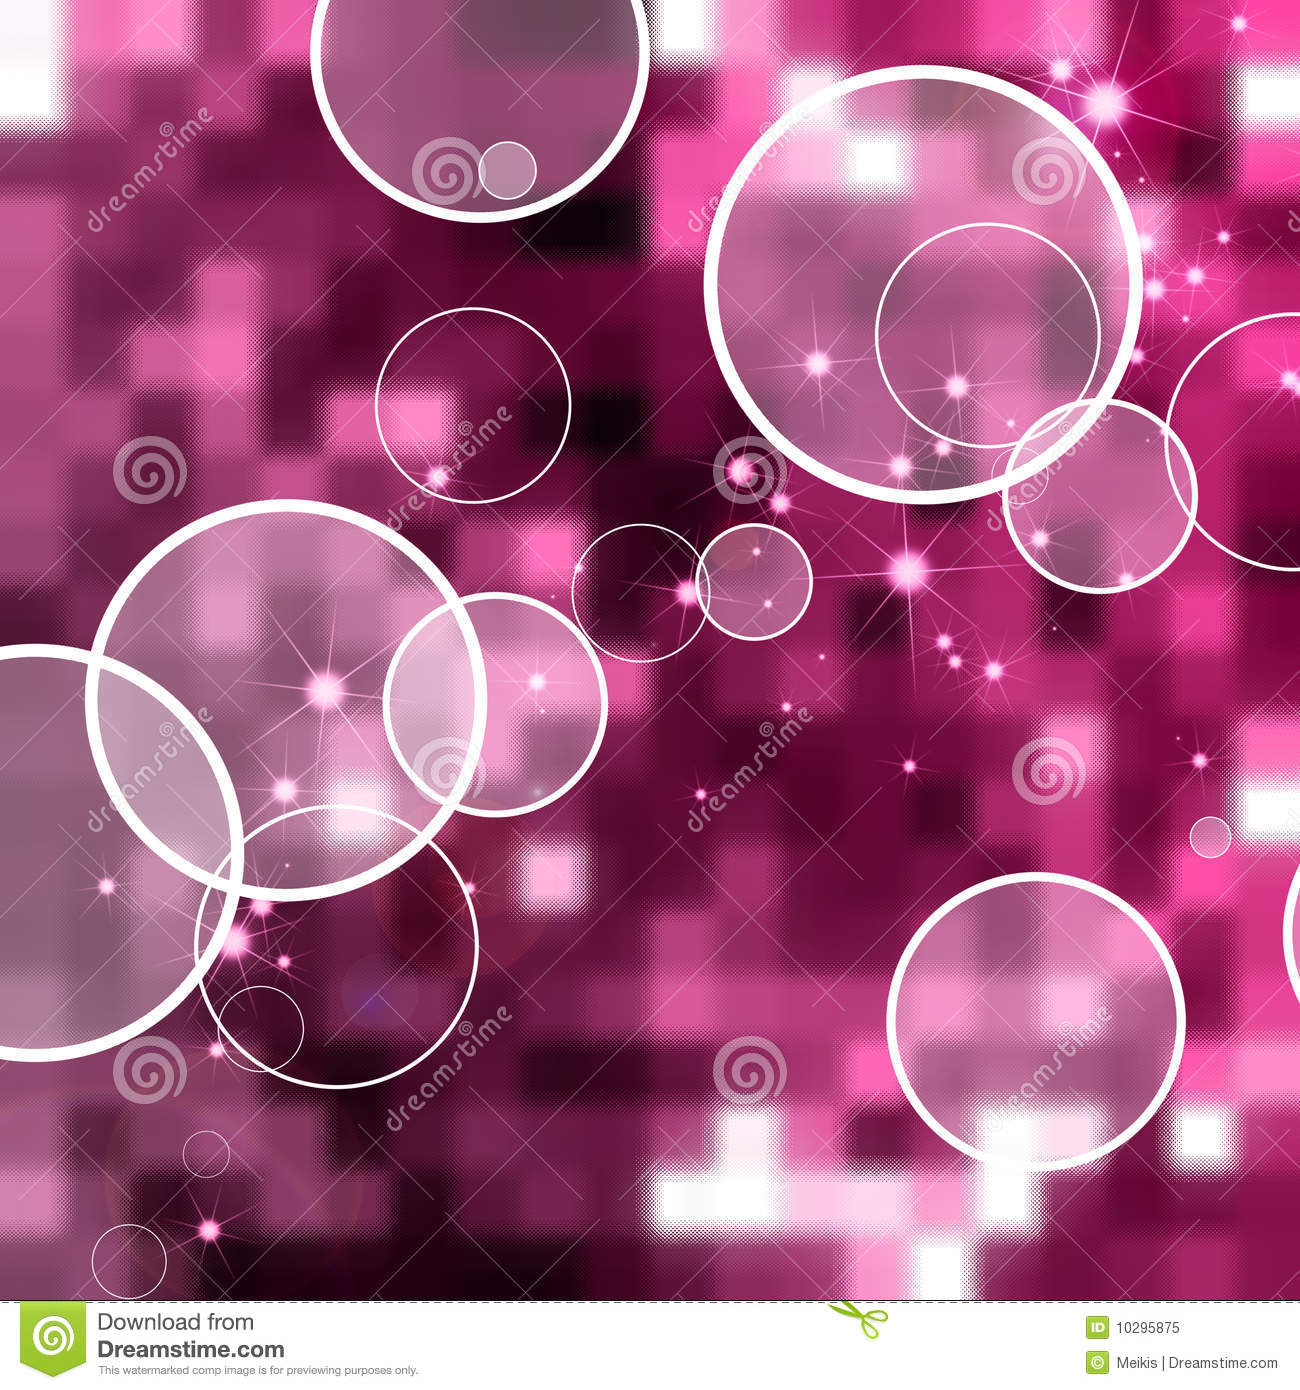 Red Star 3d Wallpaper Abstract Circle Pink Background Royalty Free Stock Photo